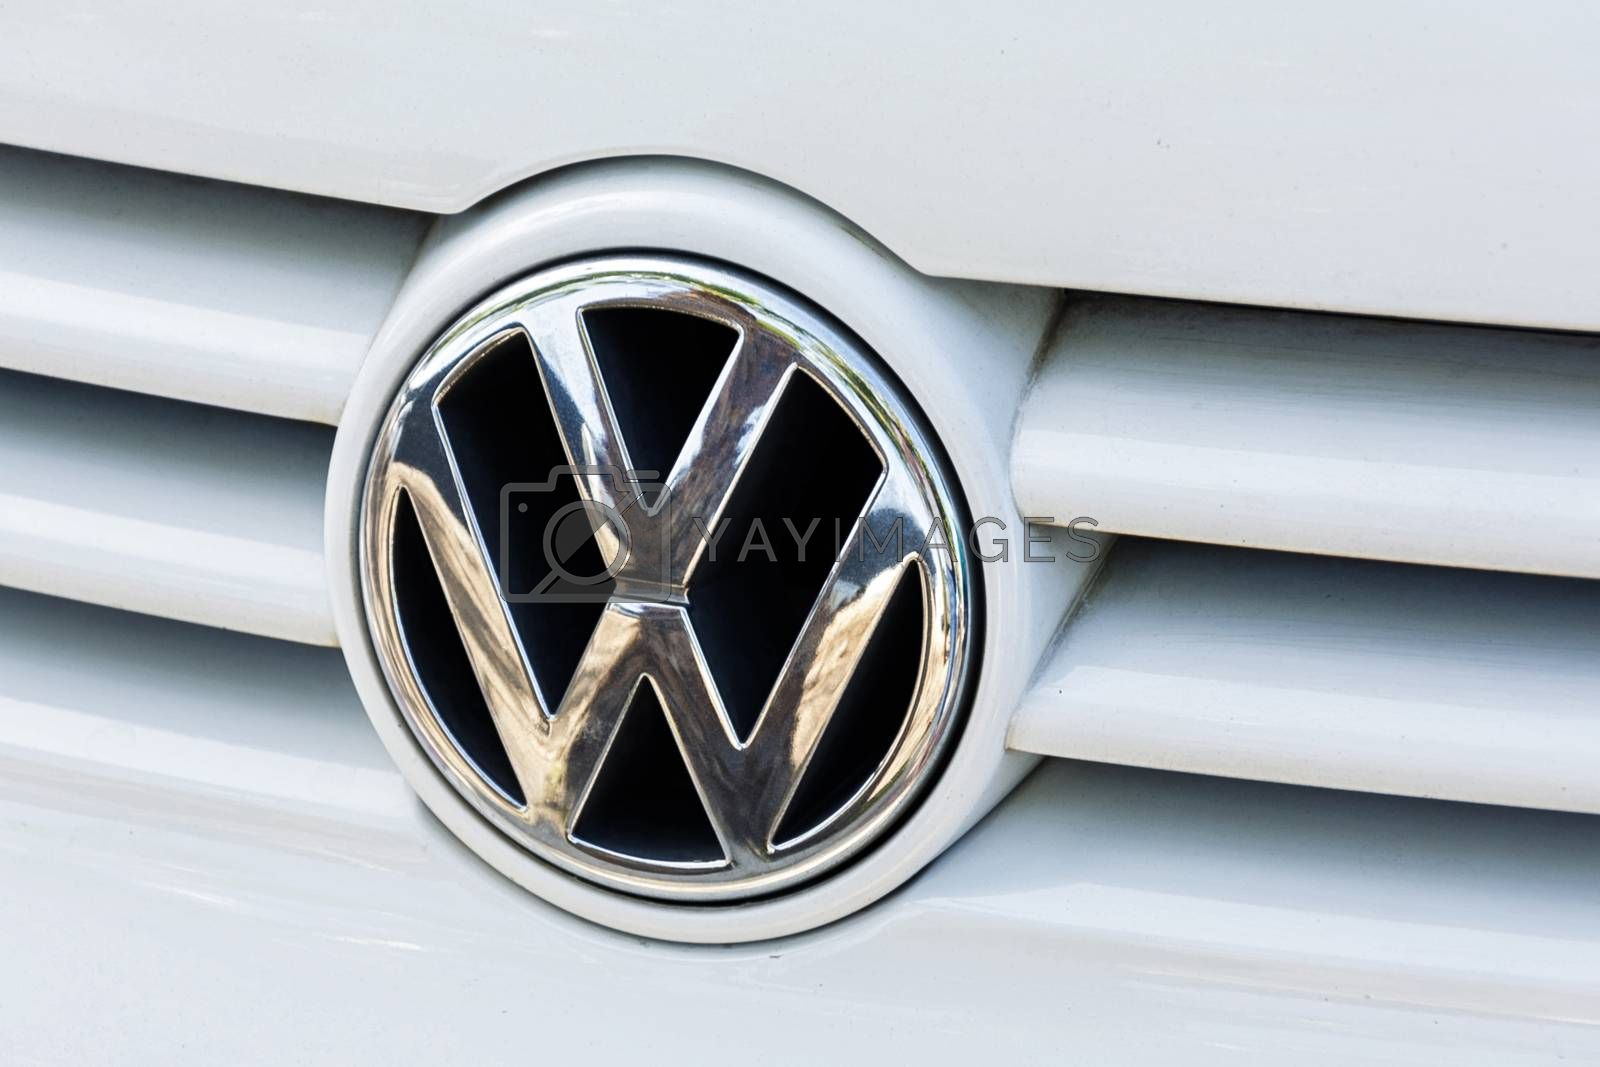 Royalty free image of Logo of the German automobile company Volkswagen on the radiator by Grommik